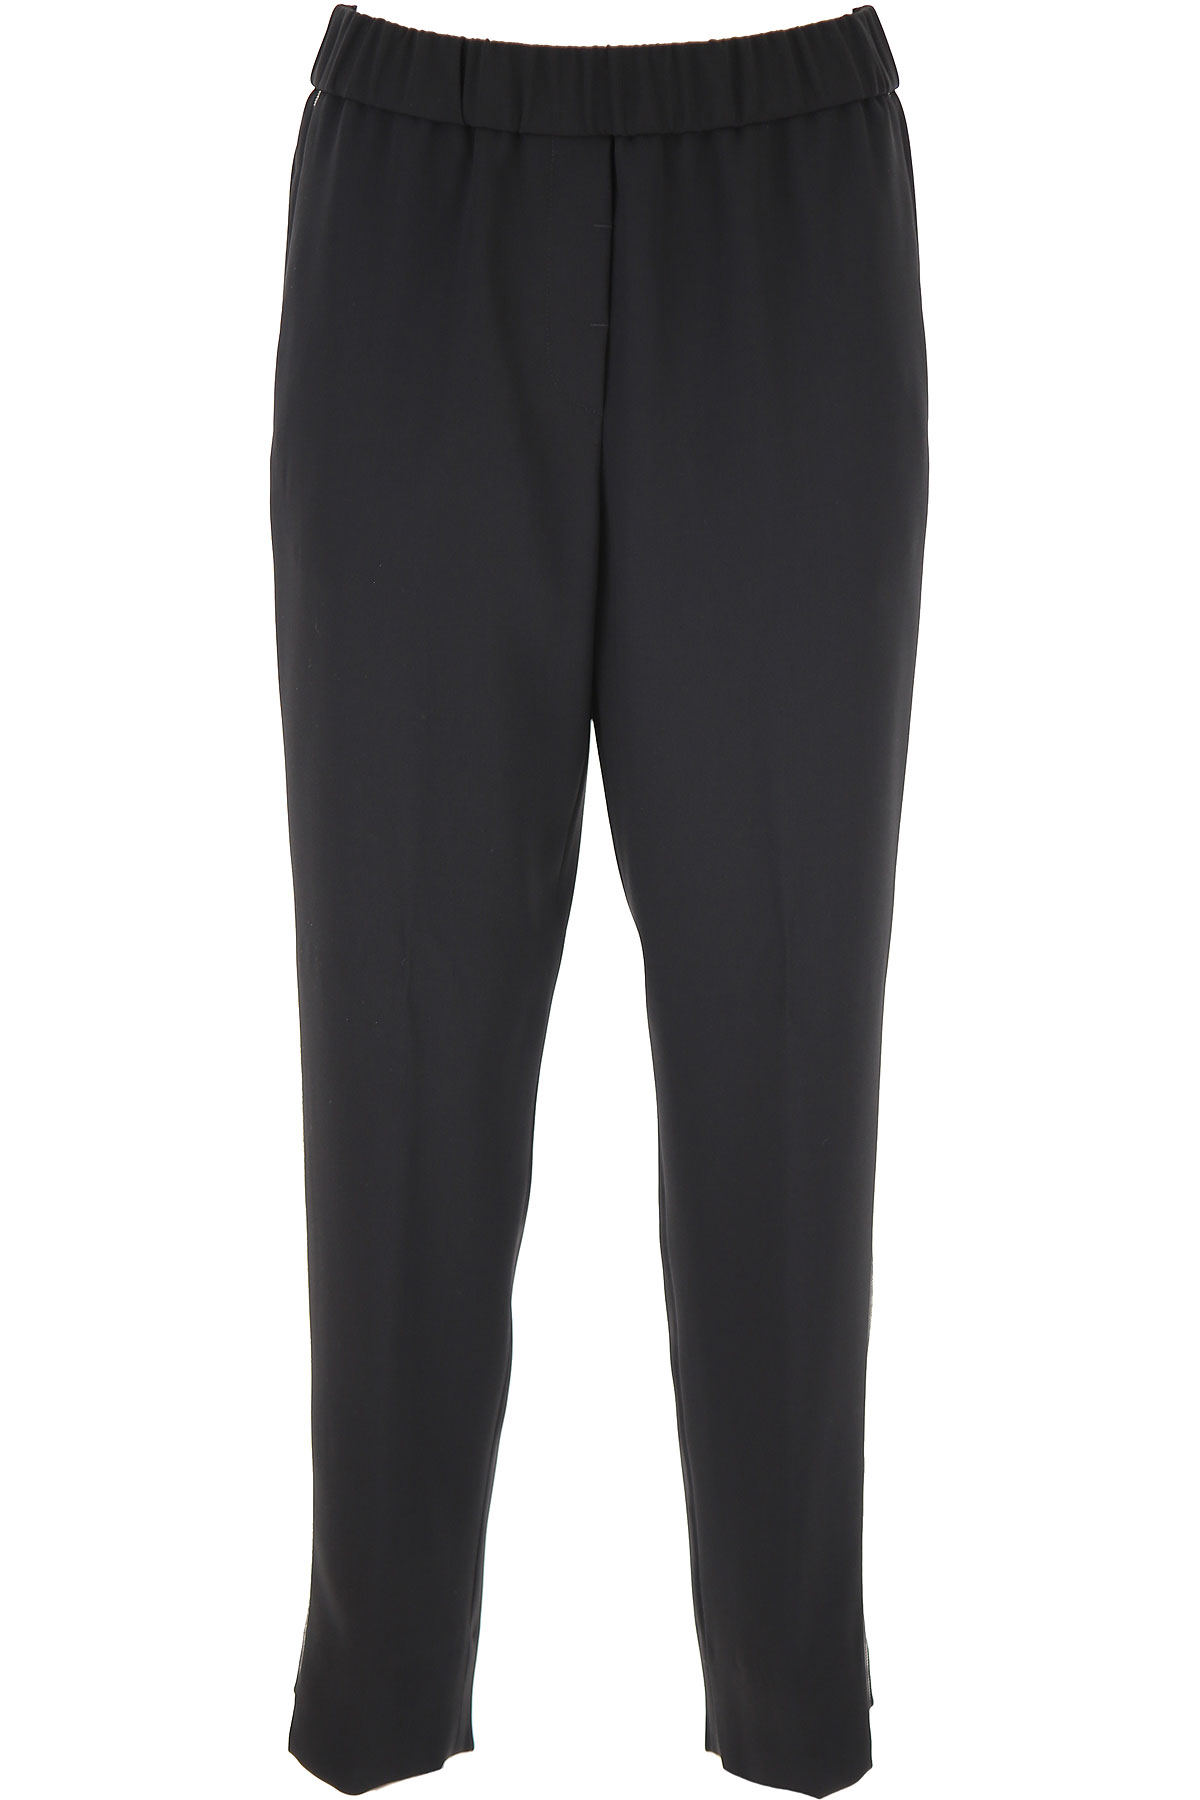 Peserico Pants for Women On Sale, Black, polyester, 2019, 26 28